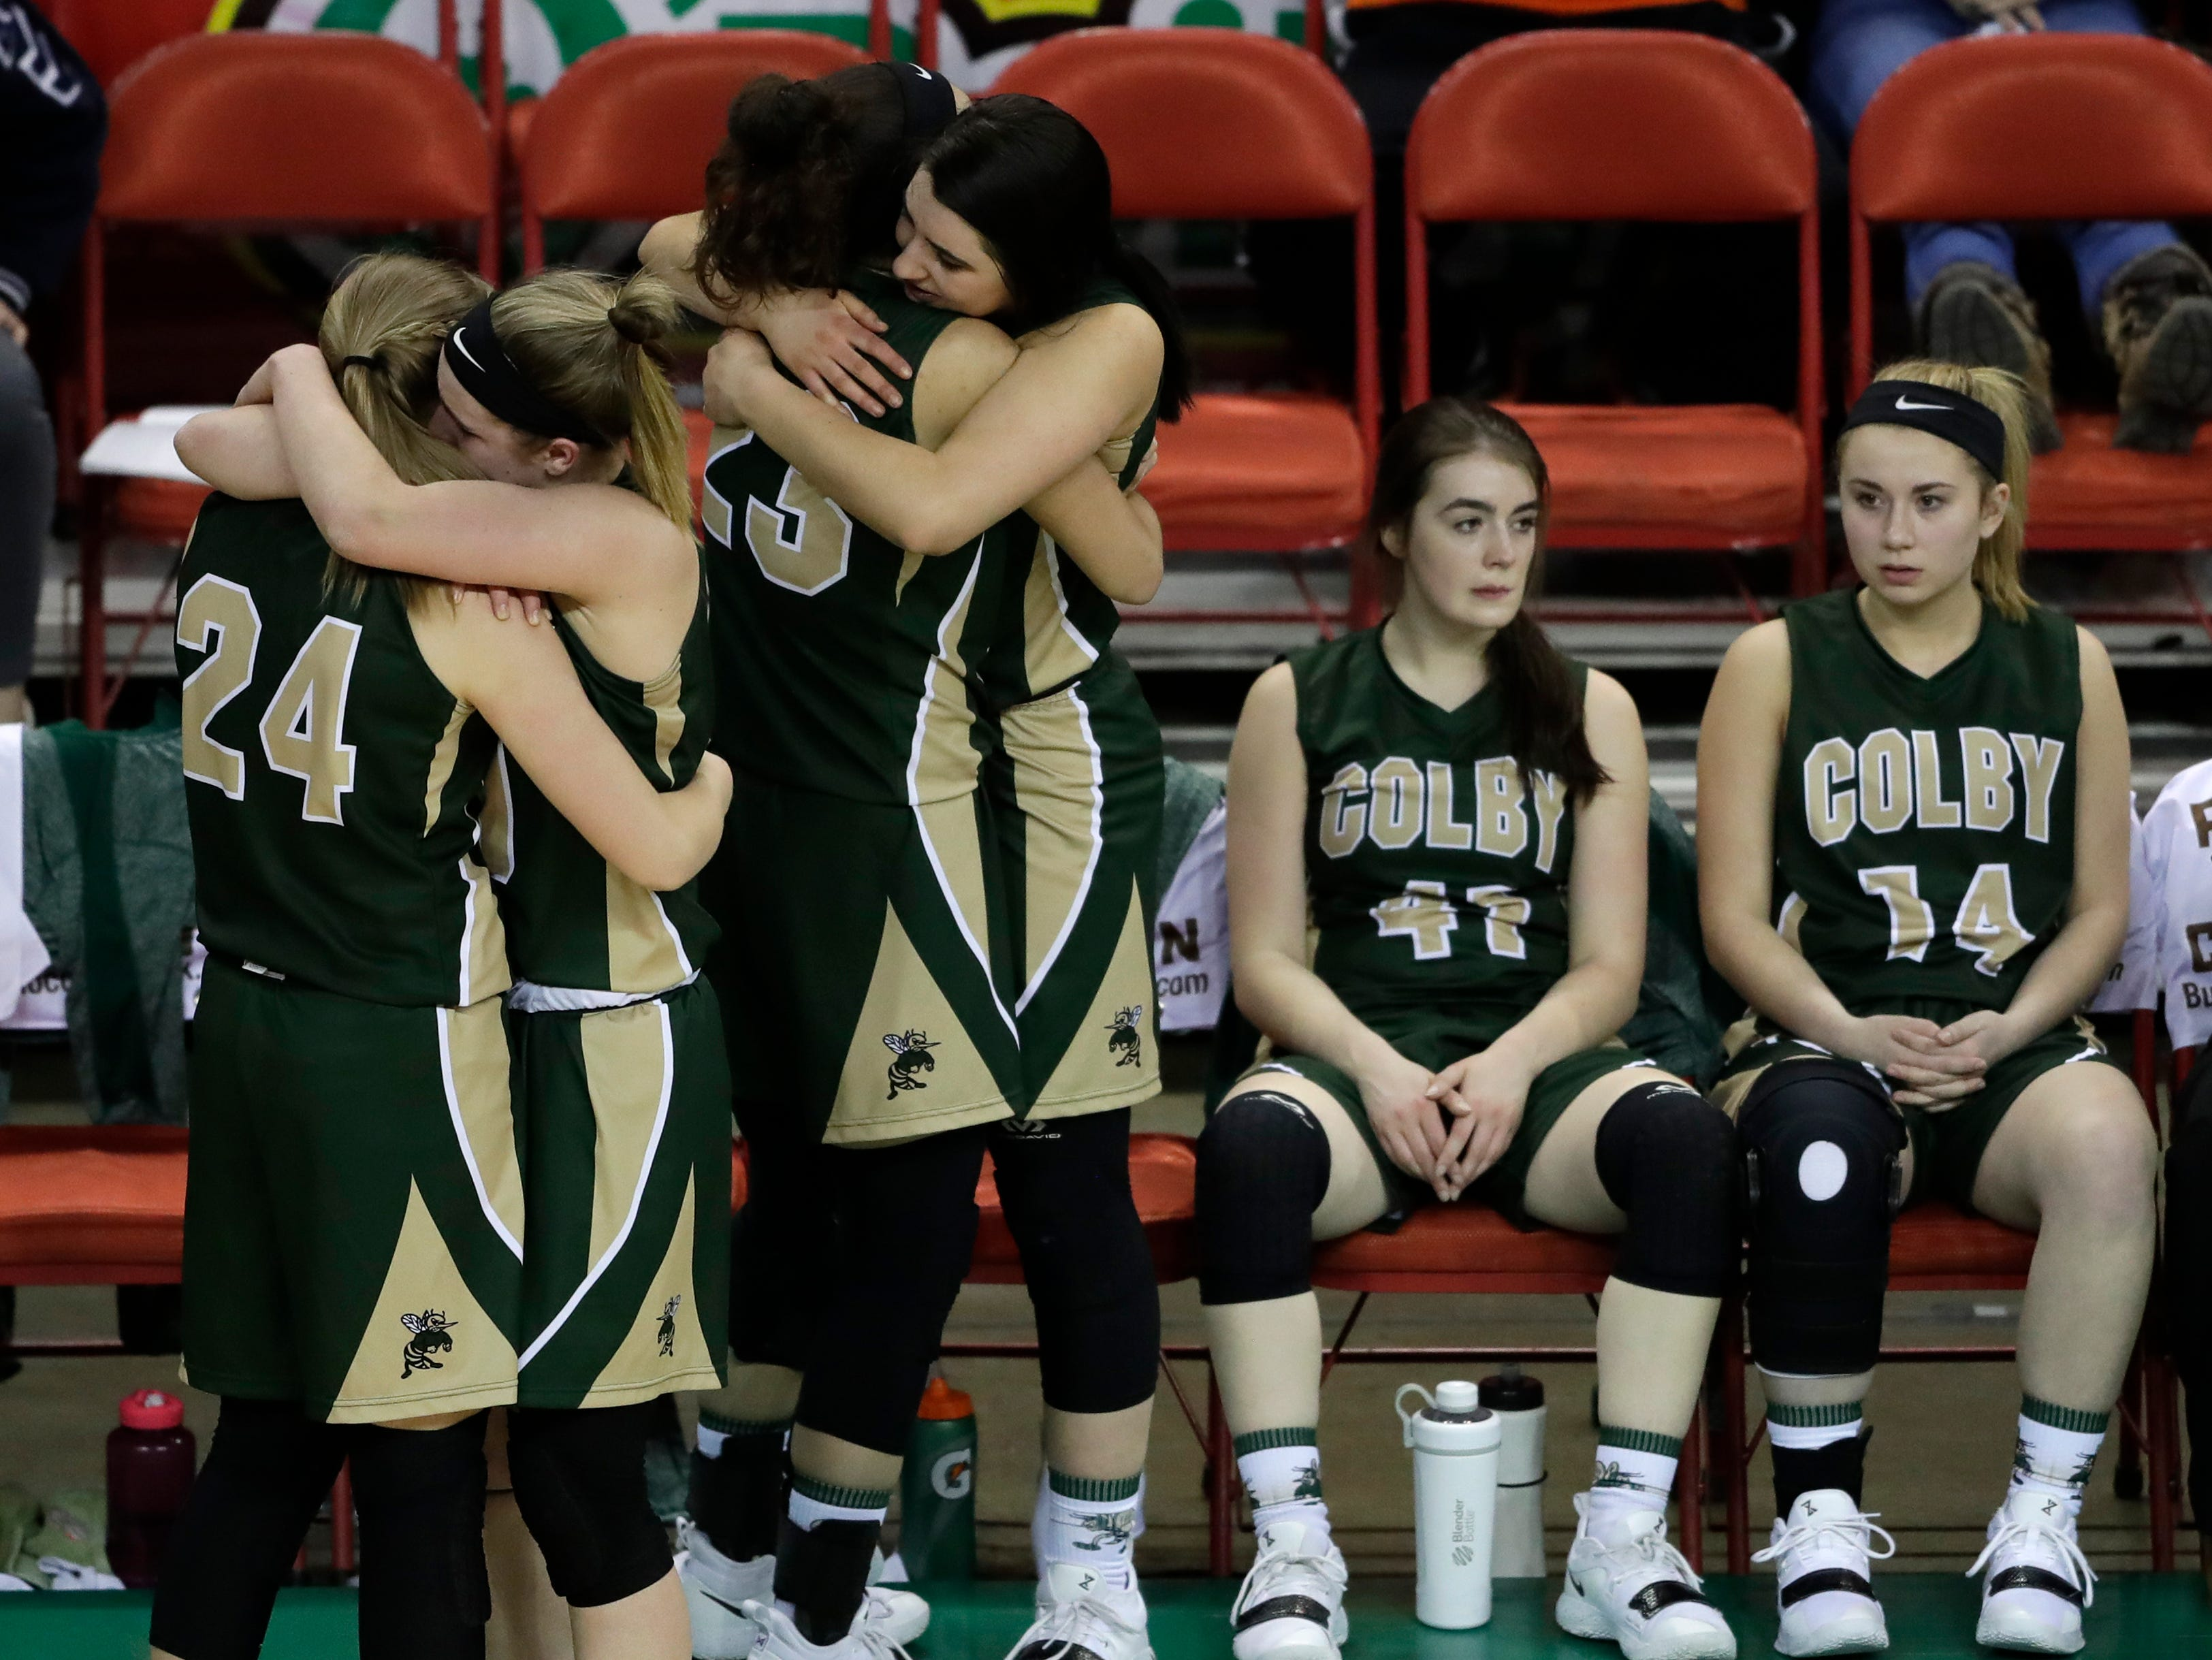 Colby's Lexi Underwood (24) and Hailey Voelker (11) embrace as their teammates Vanessa Lopez (23) and Mackenzie Seemann (21) embrace in the closing minutes against Melrose-Mindoro during their Division 4 semifinal game at the WIAA girls state basketball tournament Thursday, March 7, 2019, at the Resch Center in Ashwaubenon, Wis. Dan Powers/USA TODAY NETWORK-Wisconsin